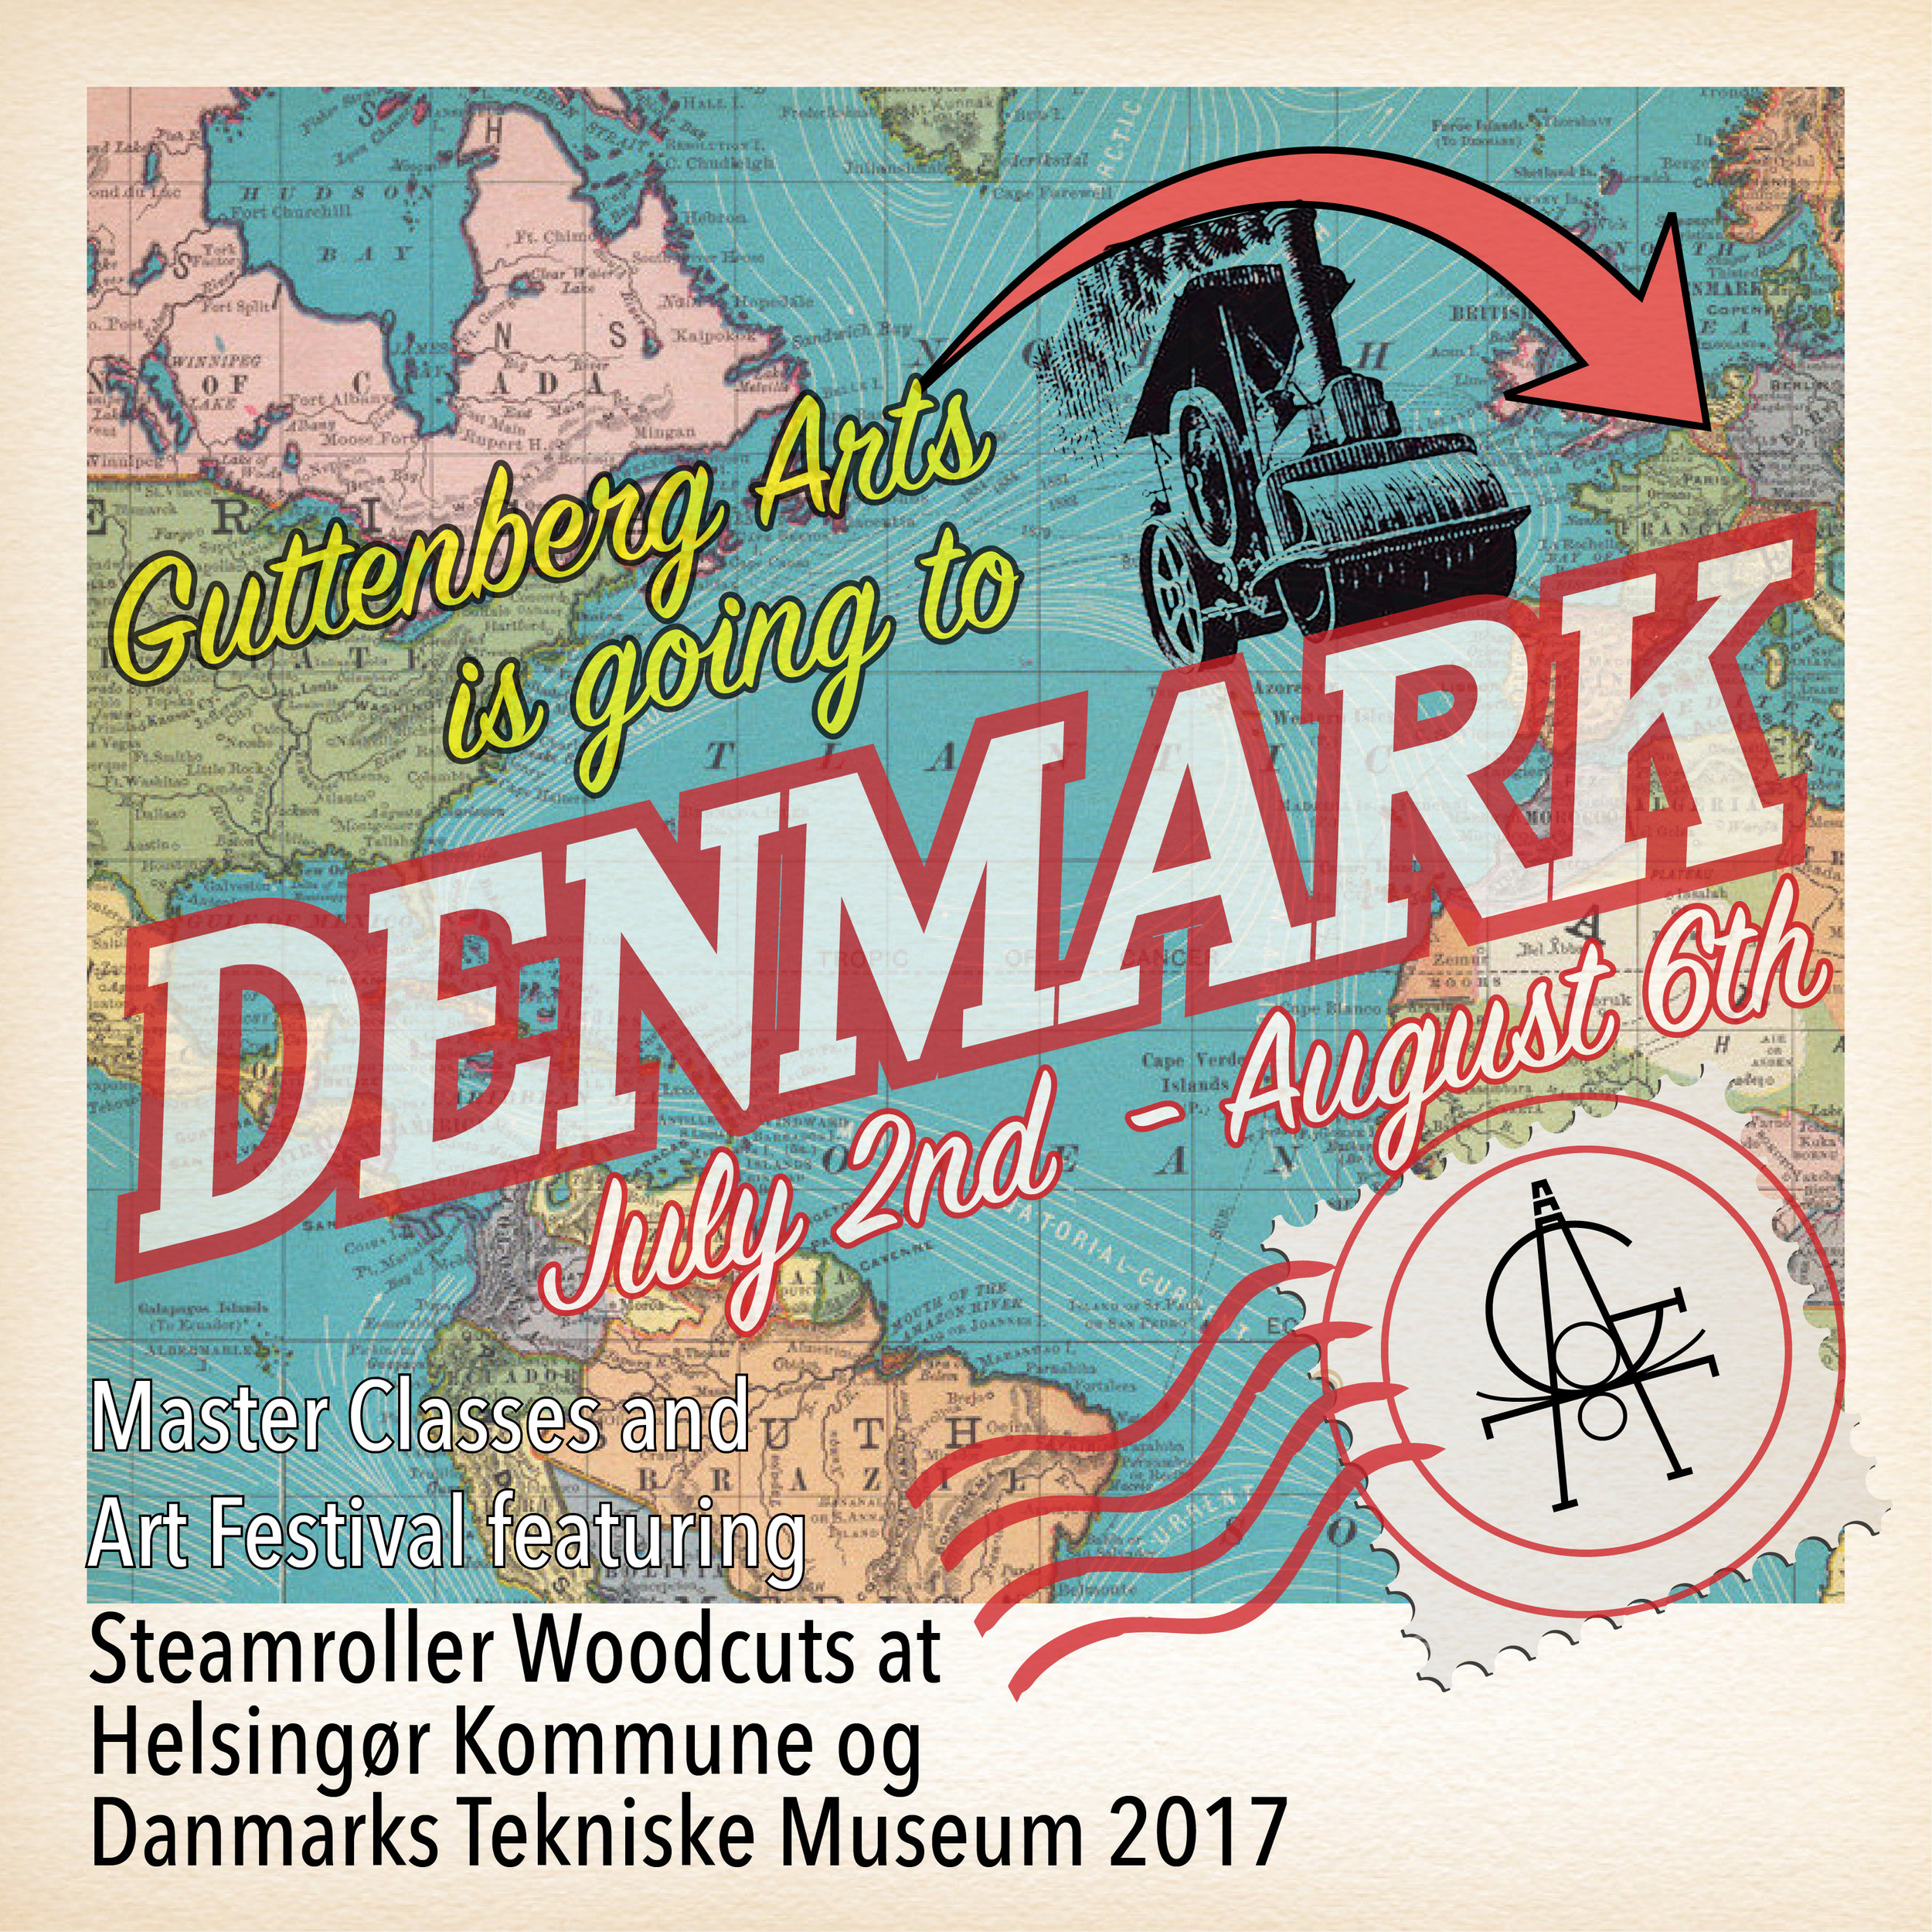 GA goes to Denmark v3.jpg